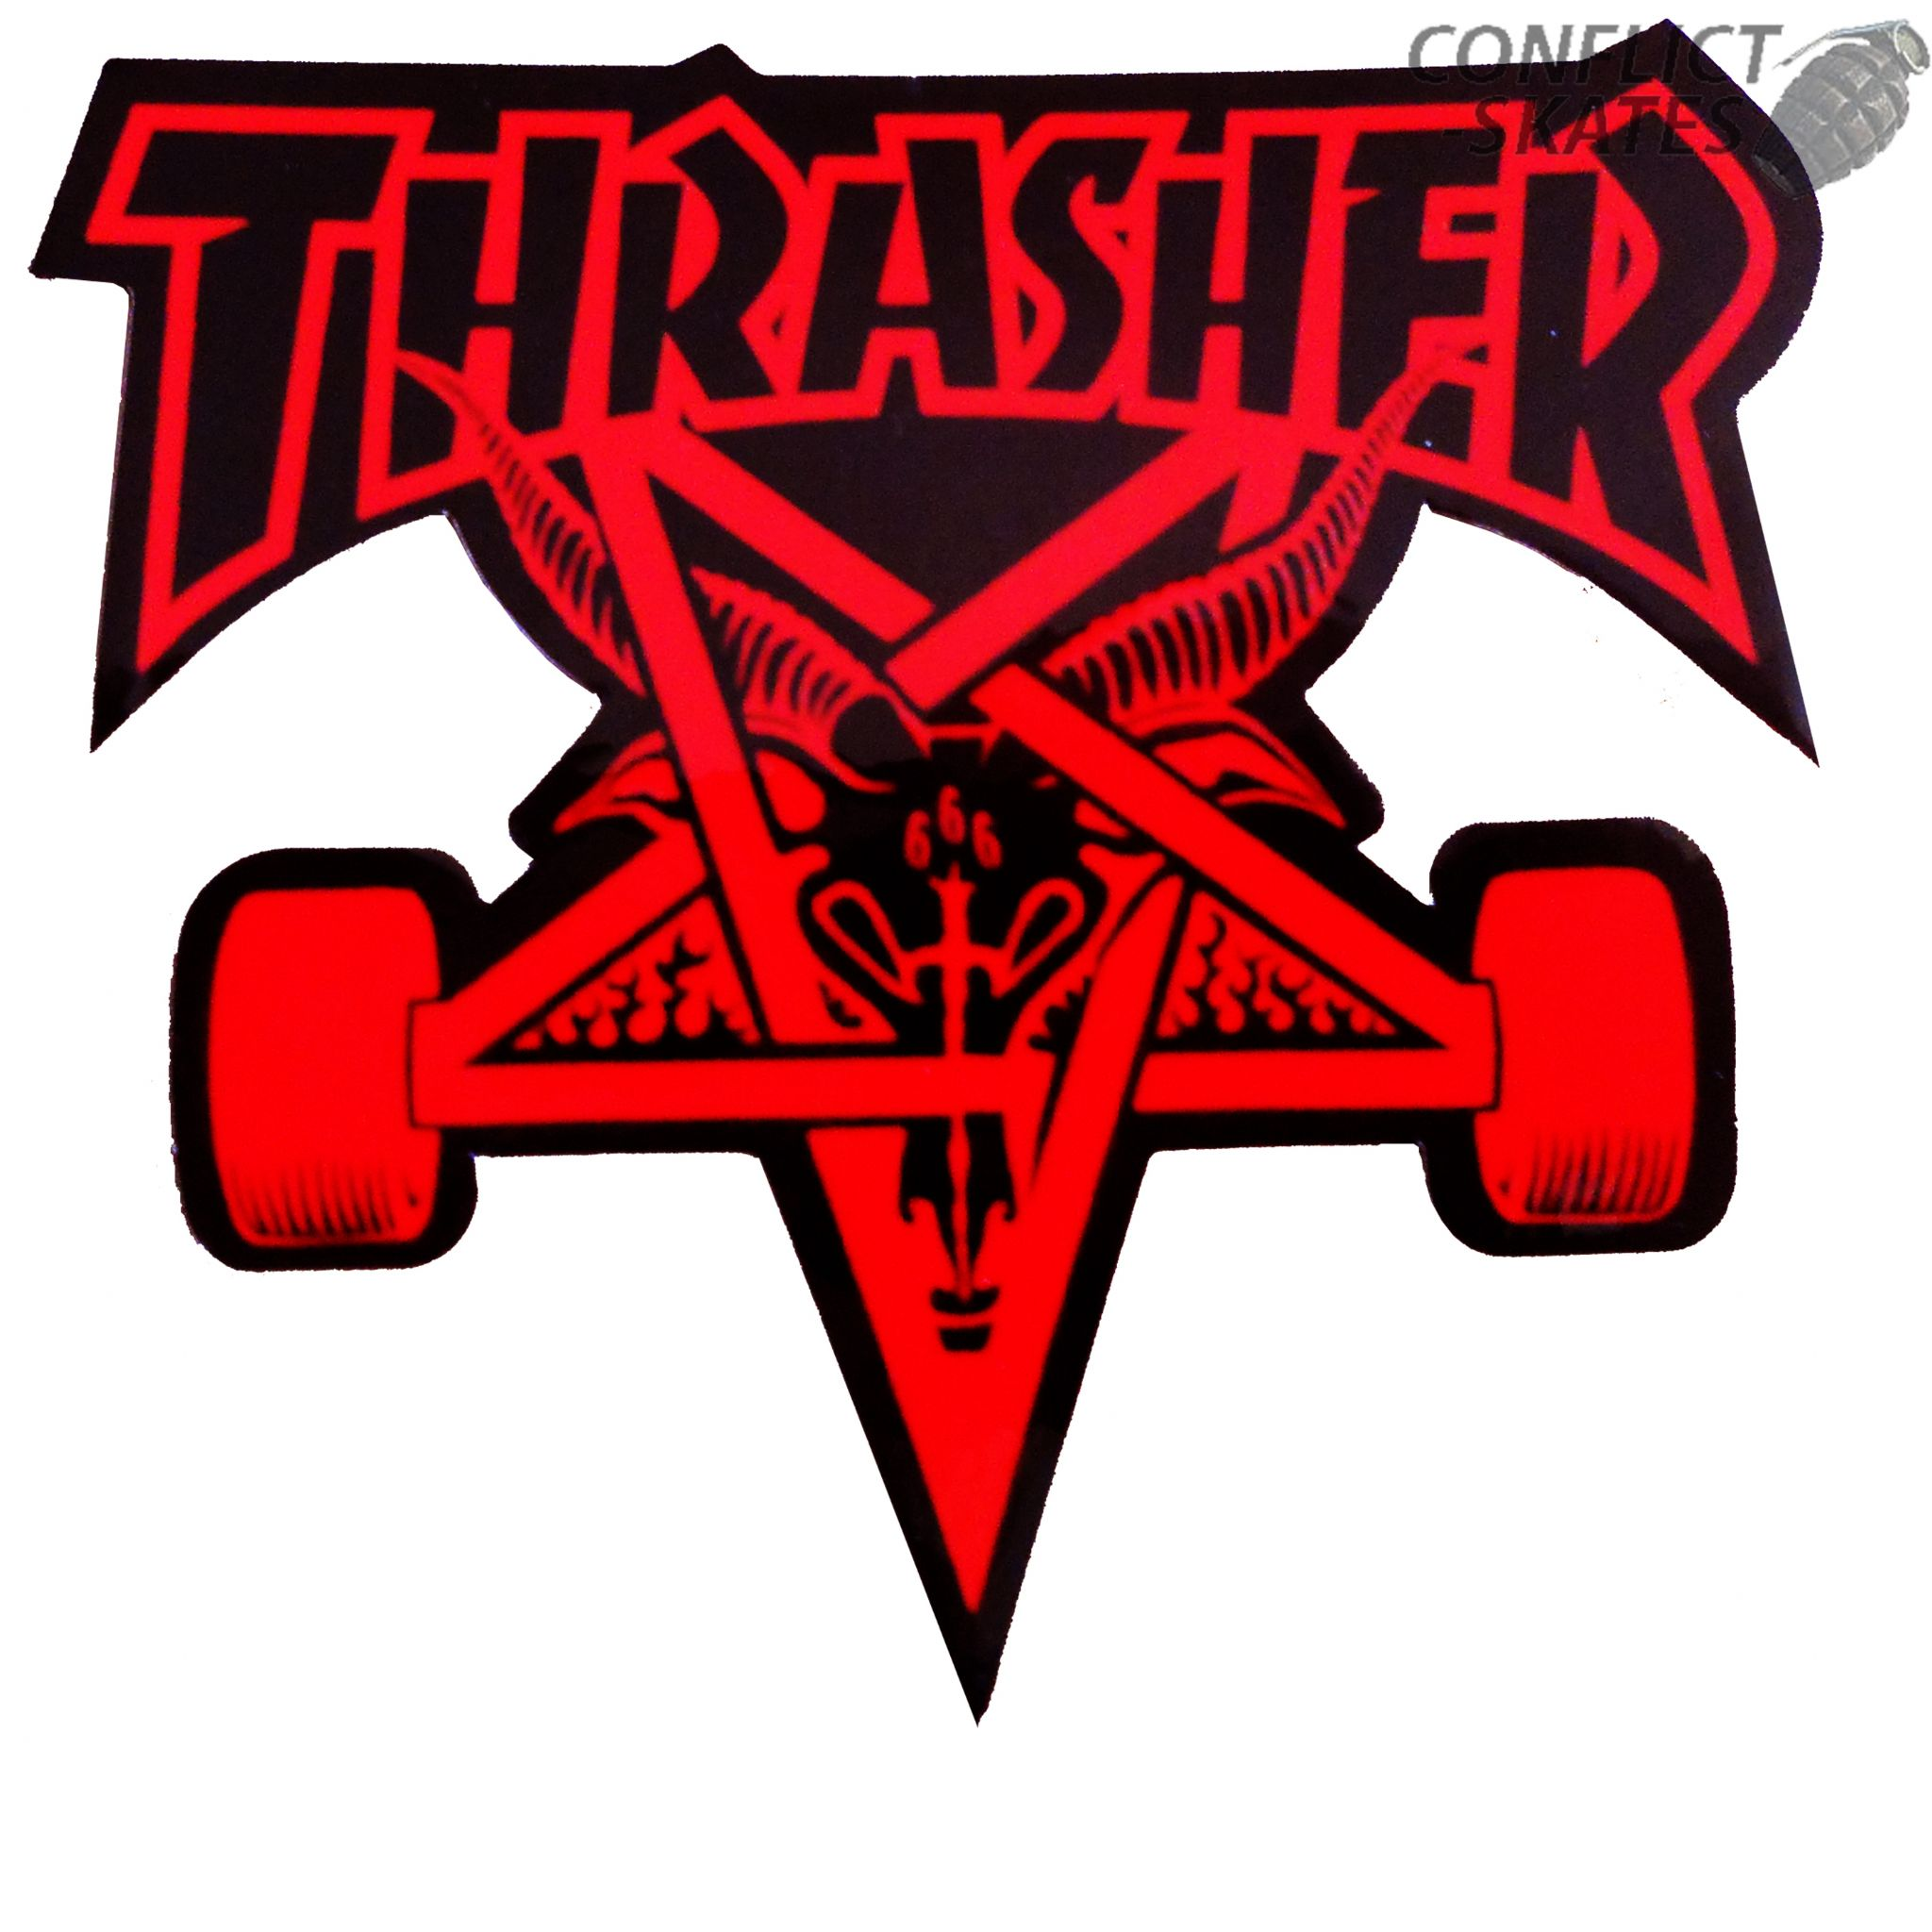 Thrasher Quot Skate Goat Quot Skateboard Sticker 10cm Medium Red